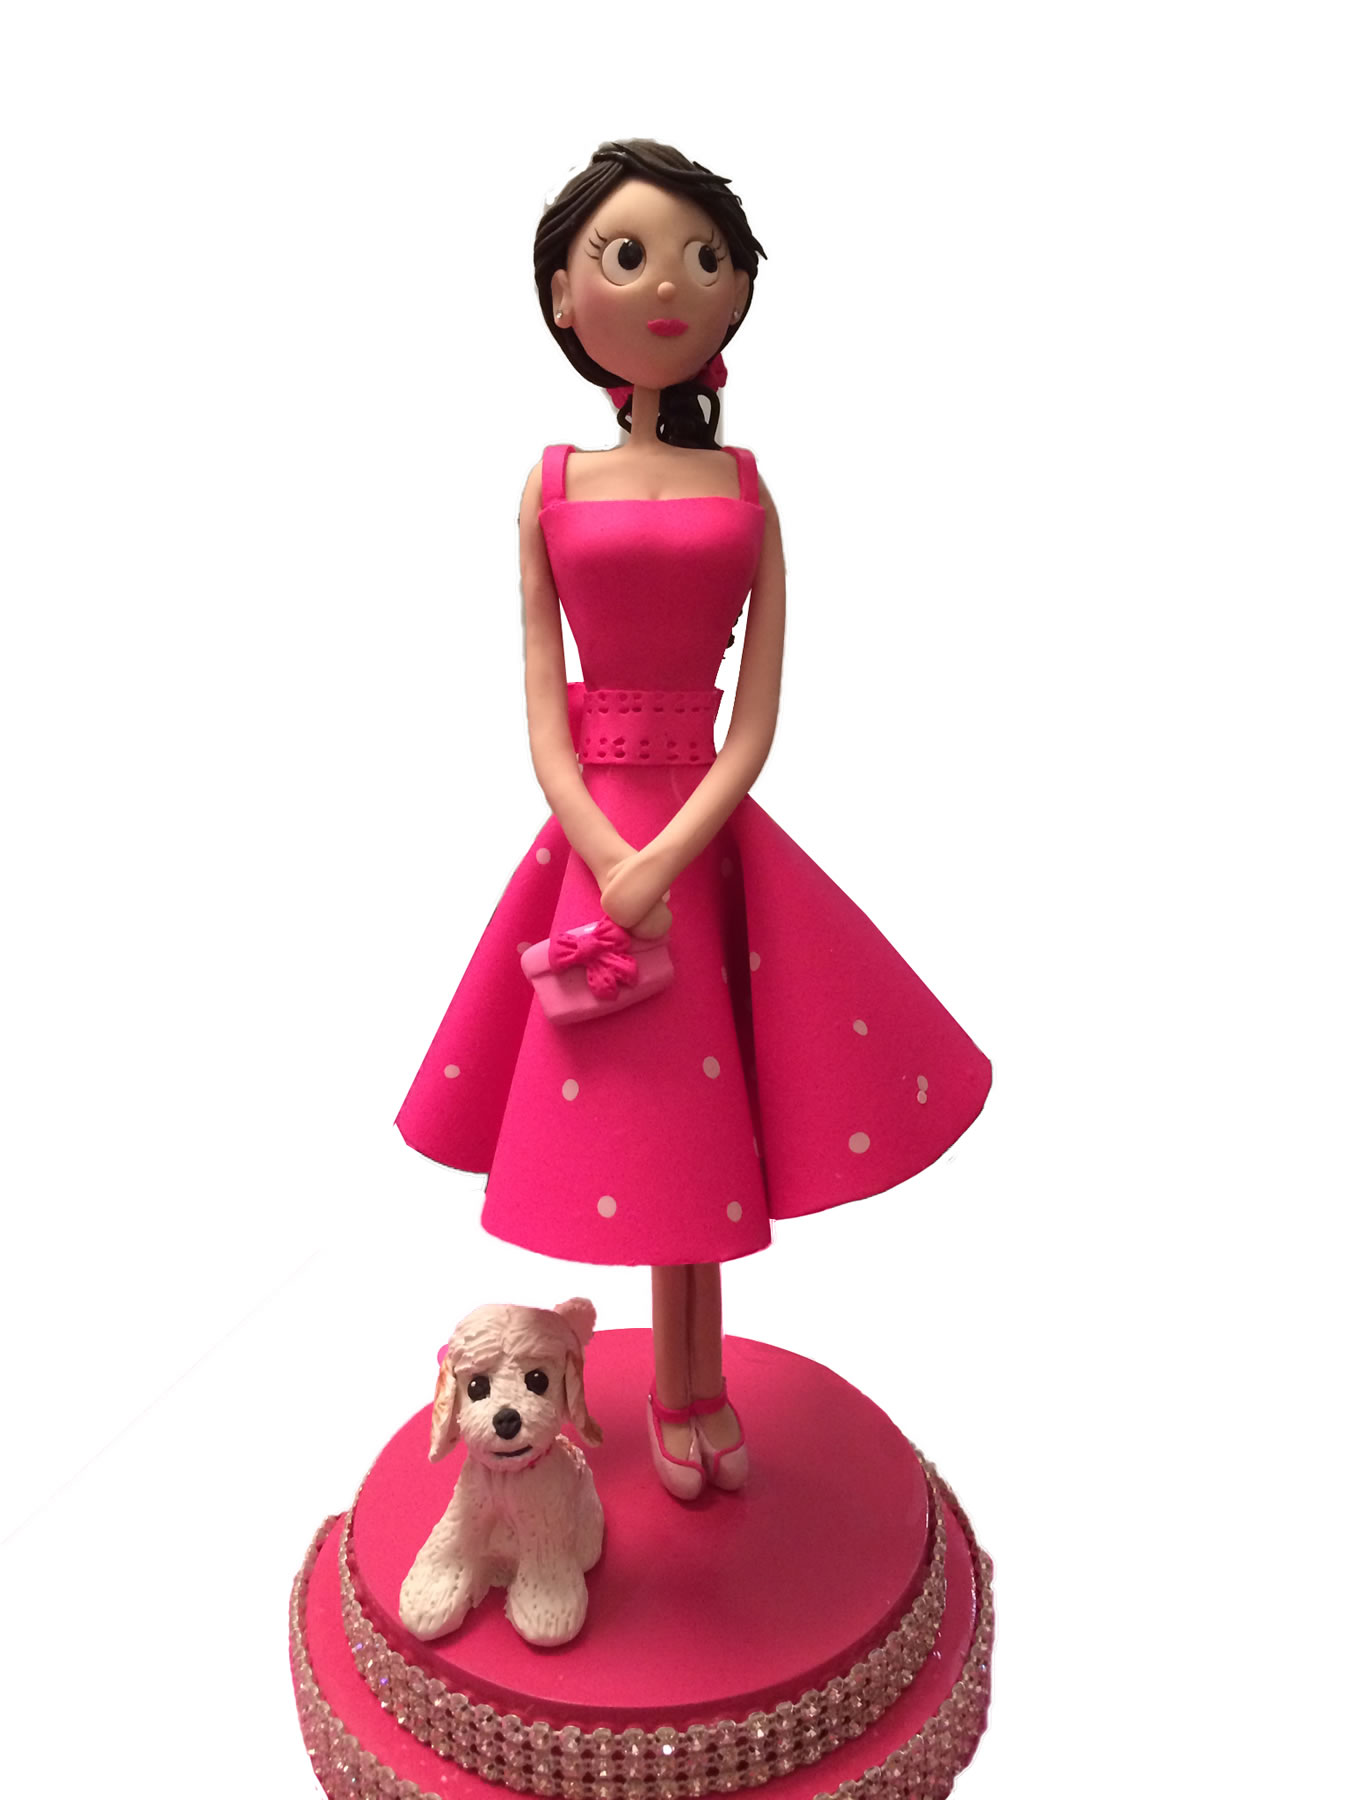 Lady in Pink with dog cake topper   New York Cake Artist